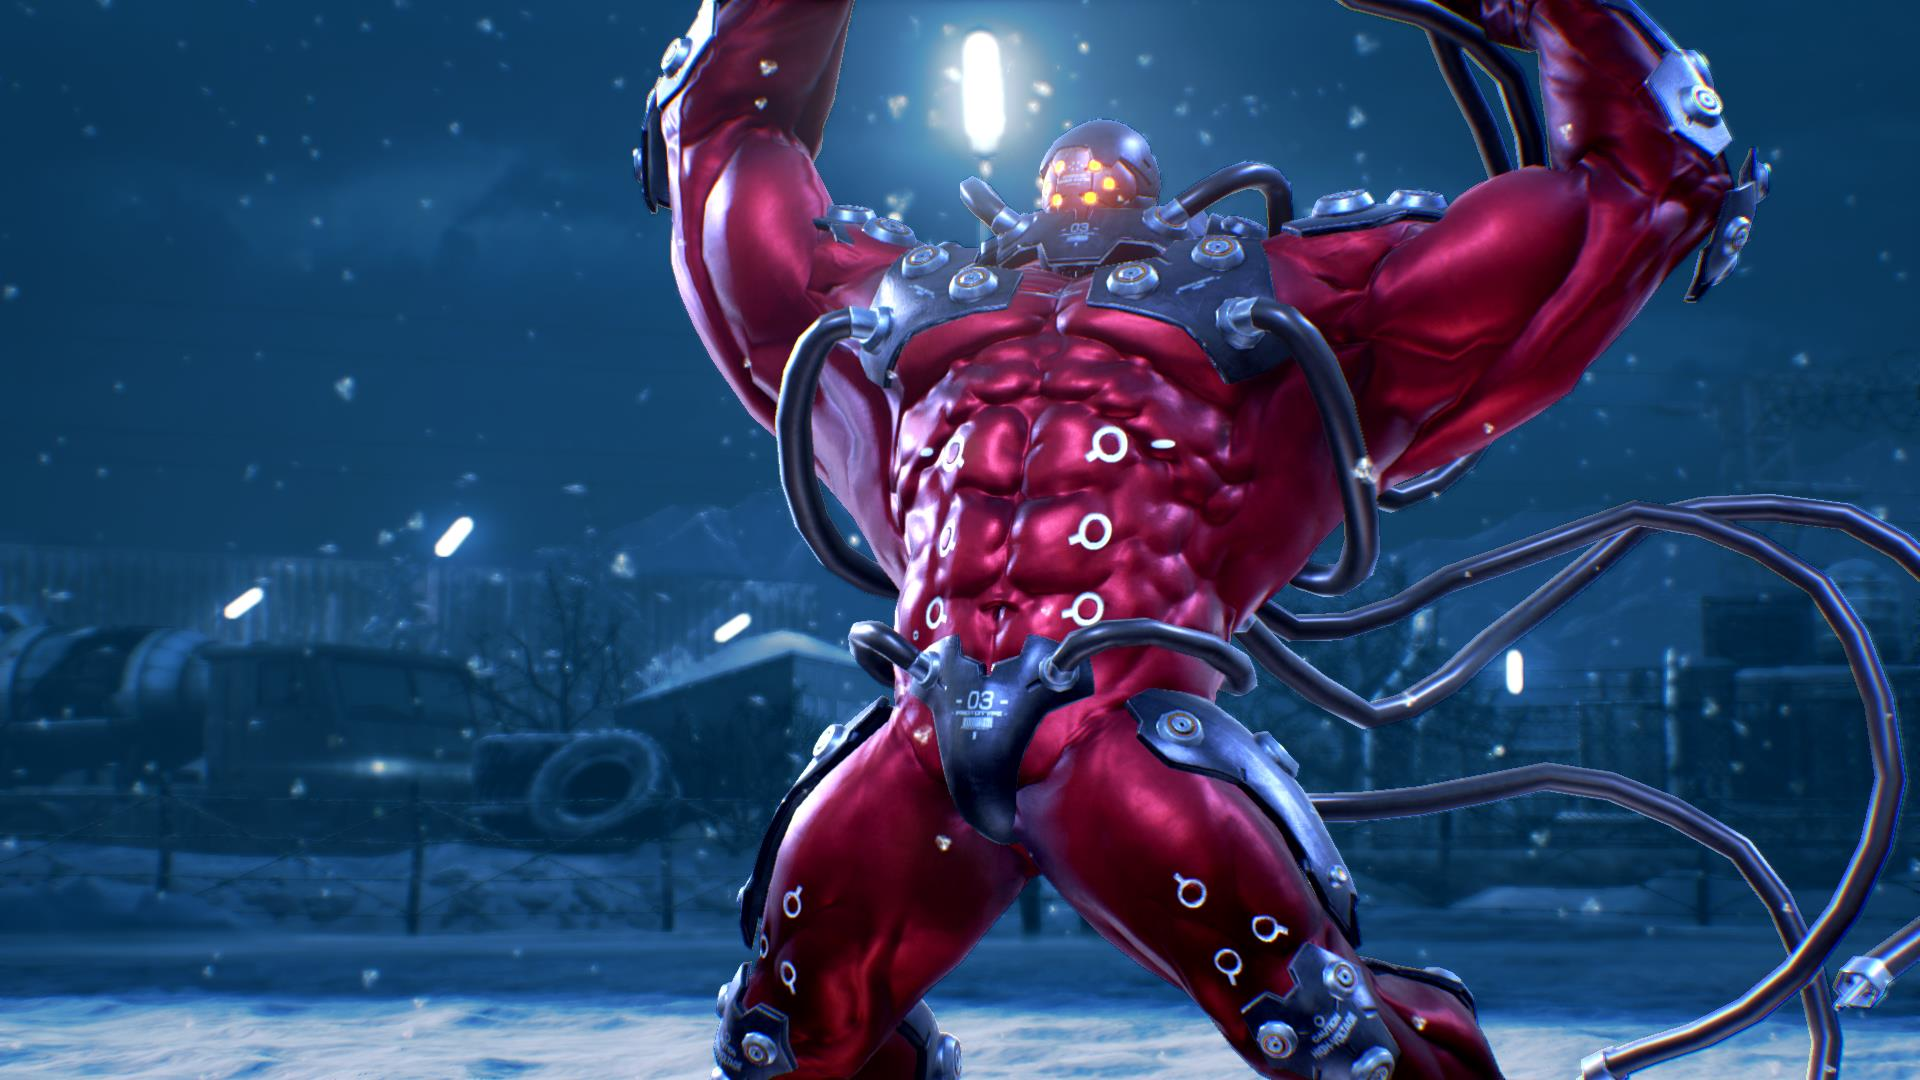 tekken-7-screenshot-73